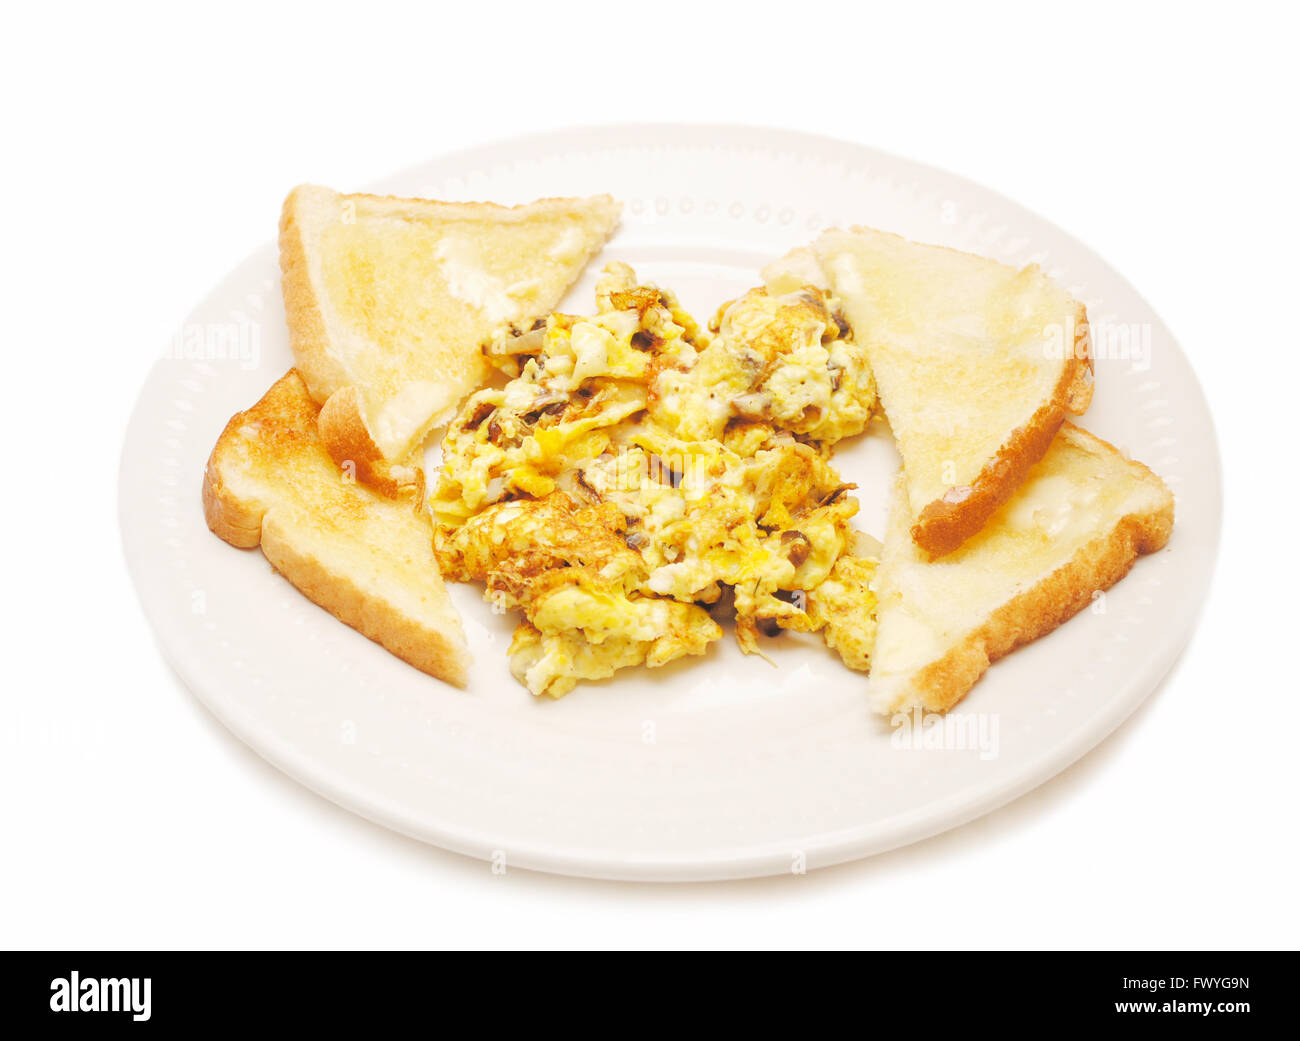 Scrambled Eggs with Mushrooms & Onions - Stock Image